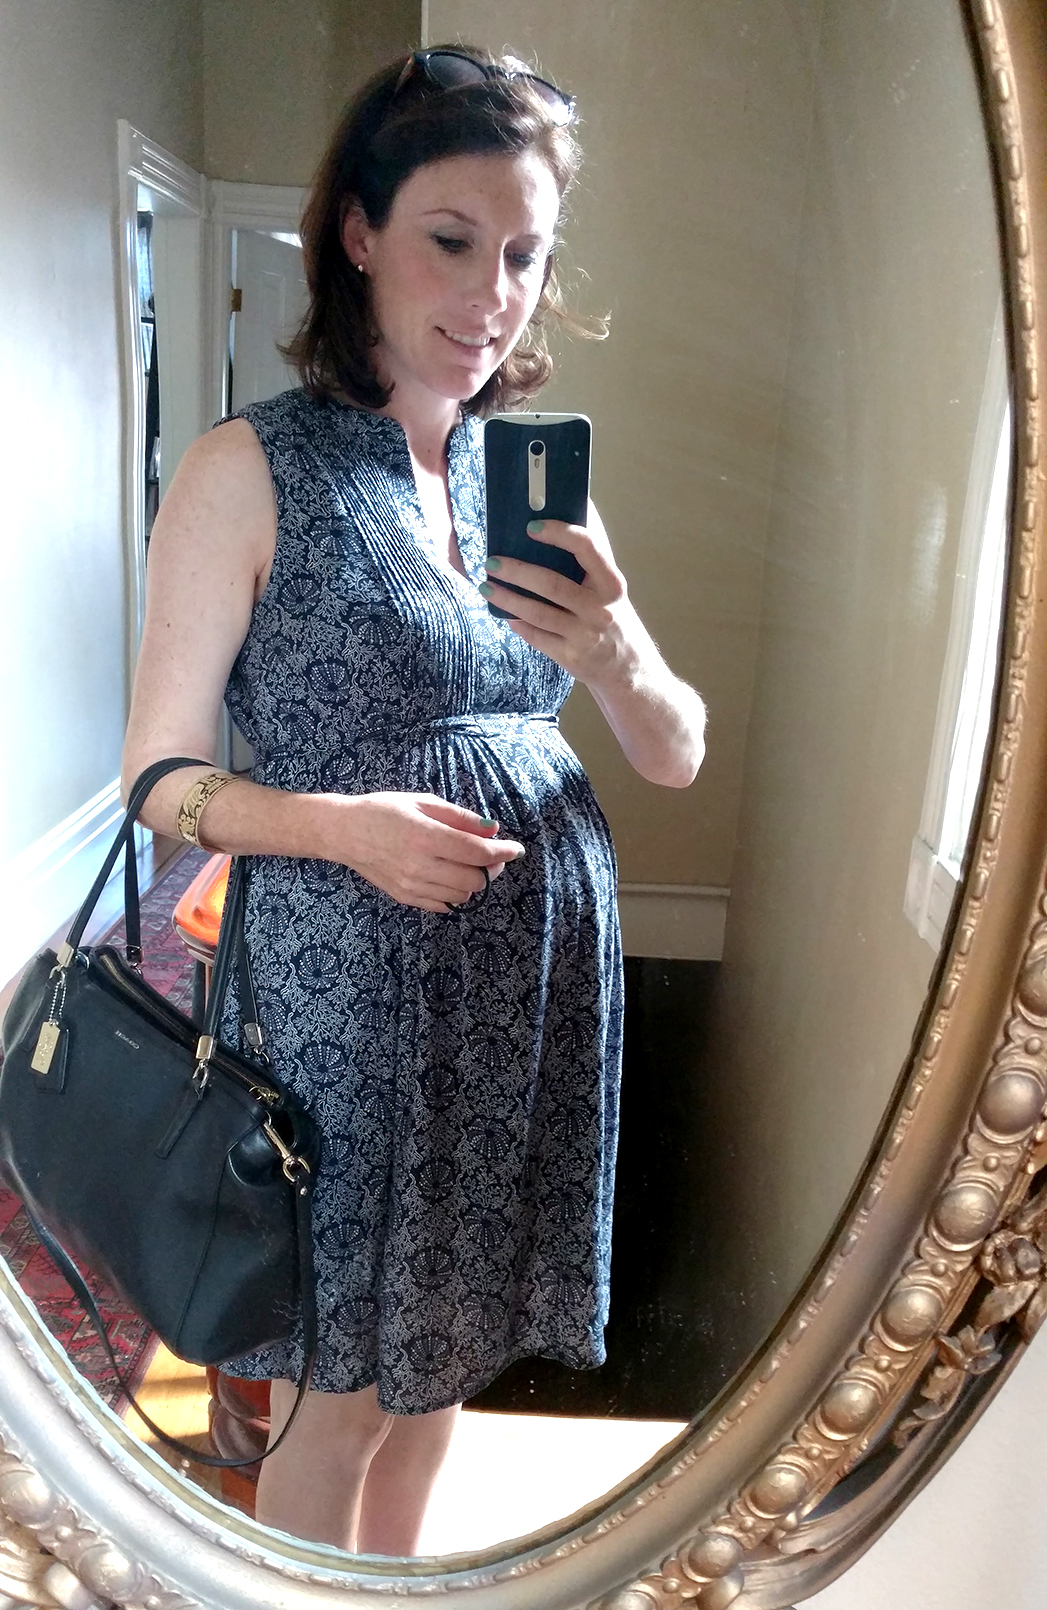 Third trimester dresses